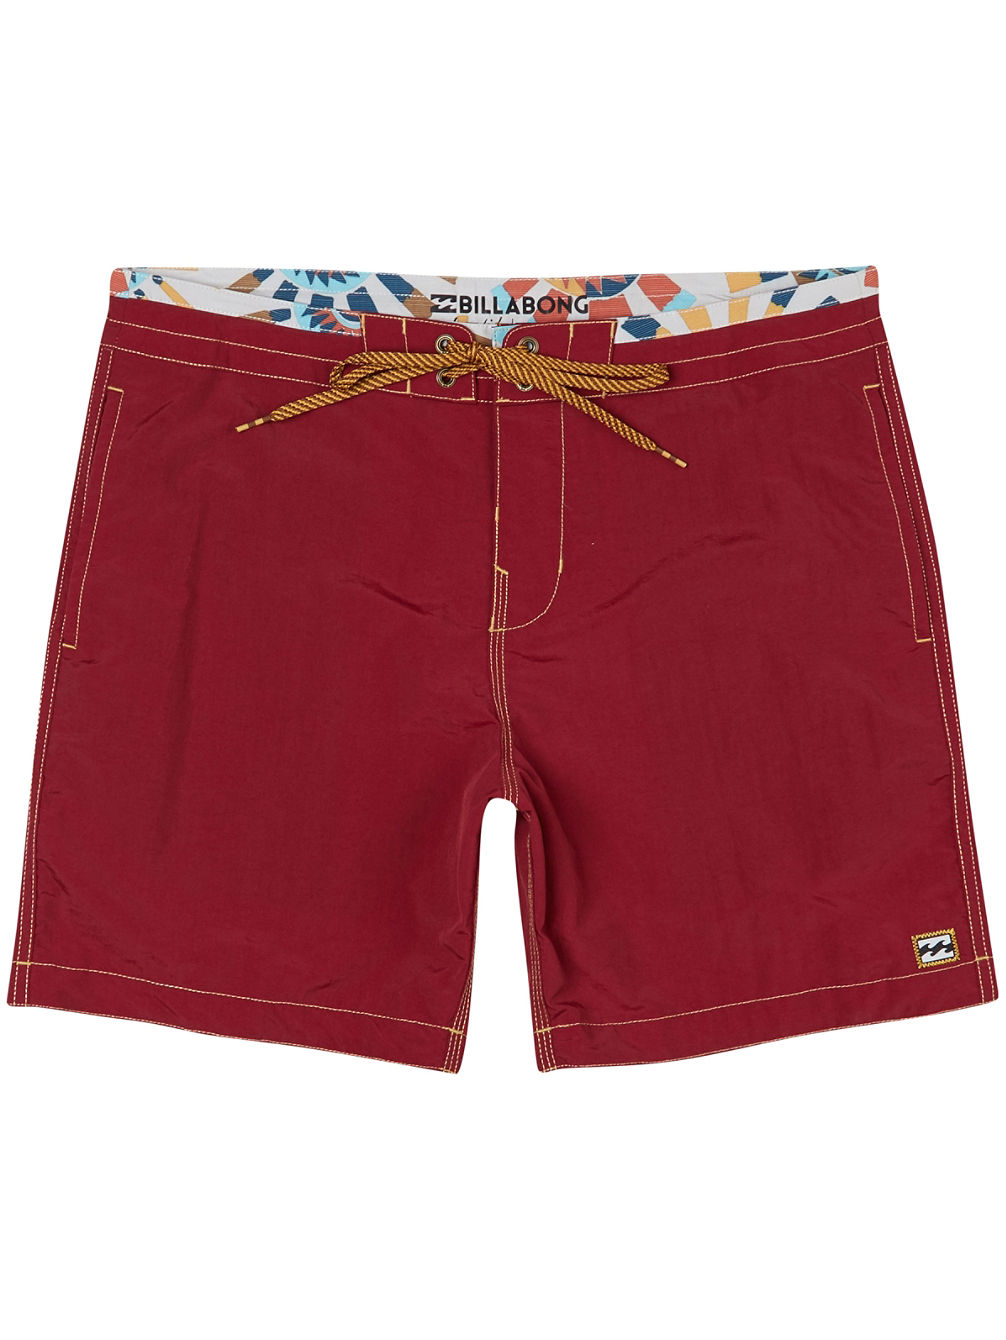 "All Day Lt 17"" Boardshorts"